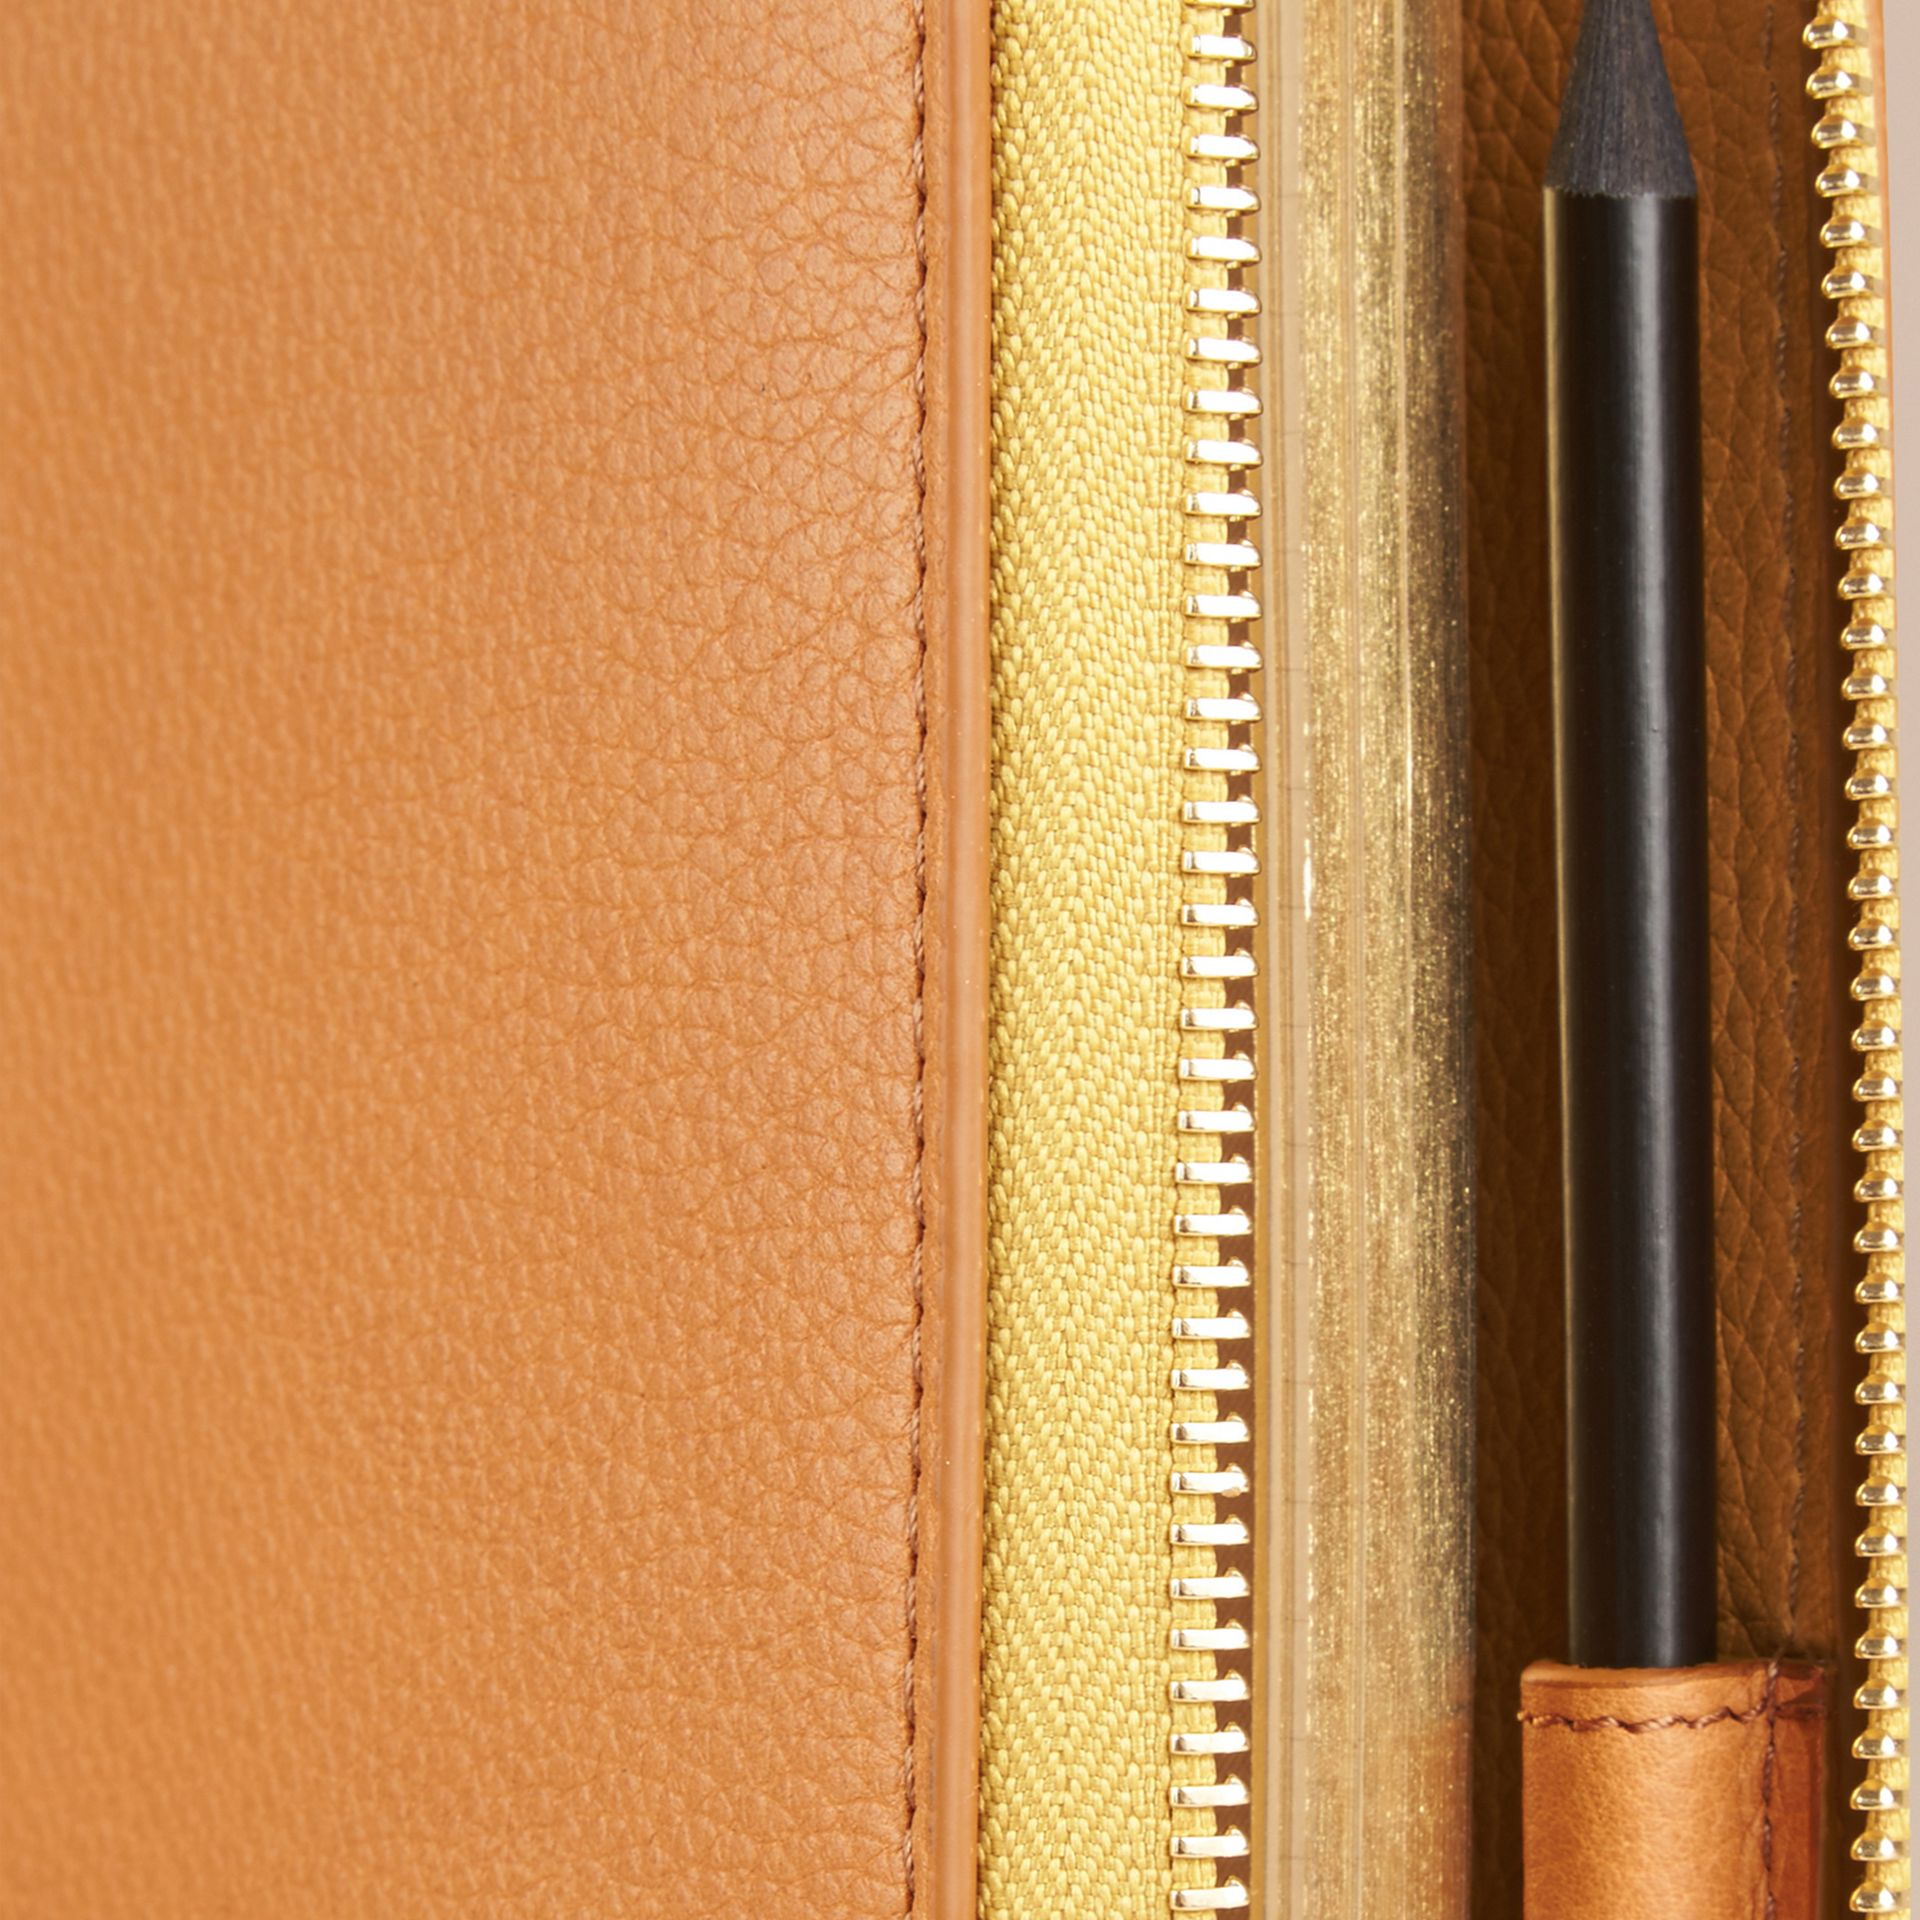 Ziparound Grainy Leather 18 Month 2016/17 A5 Diary in Ochre Yellow | Burberry - gallery image 2